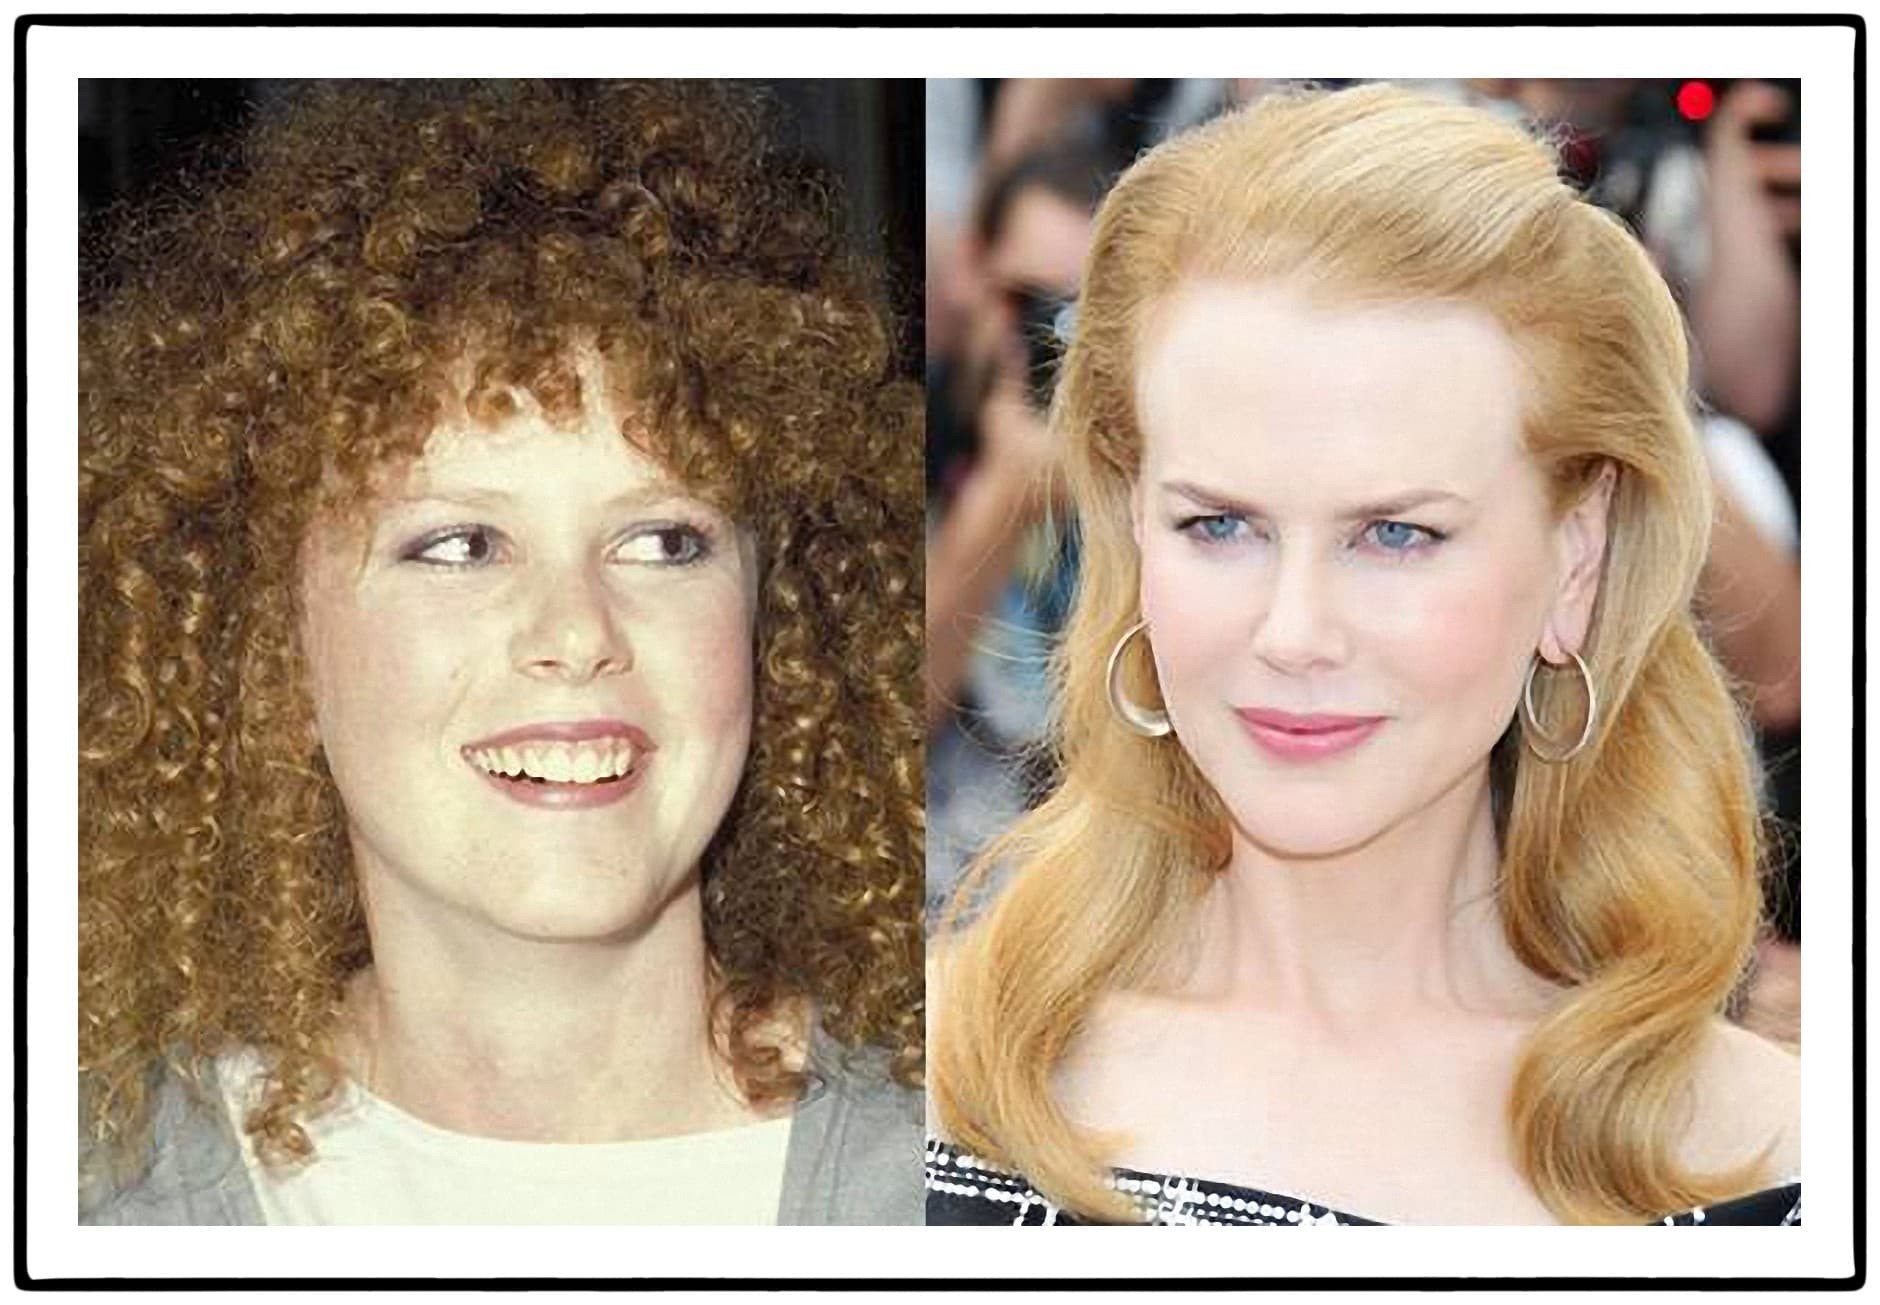 Nicole Kid Man Before And After Plastic Surgery photo - 1